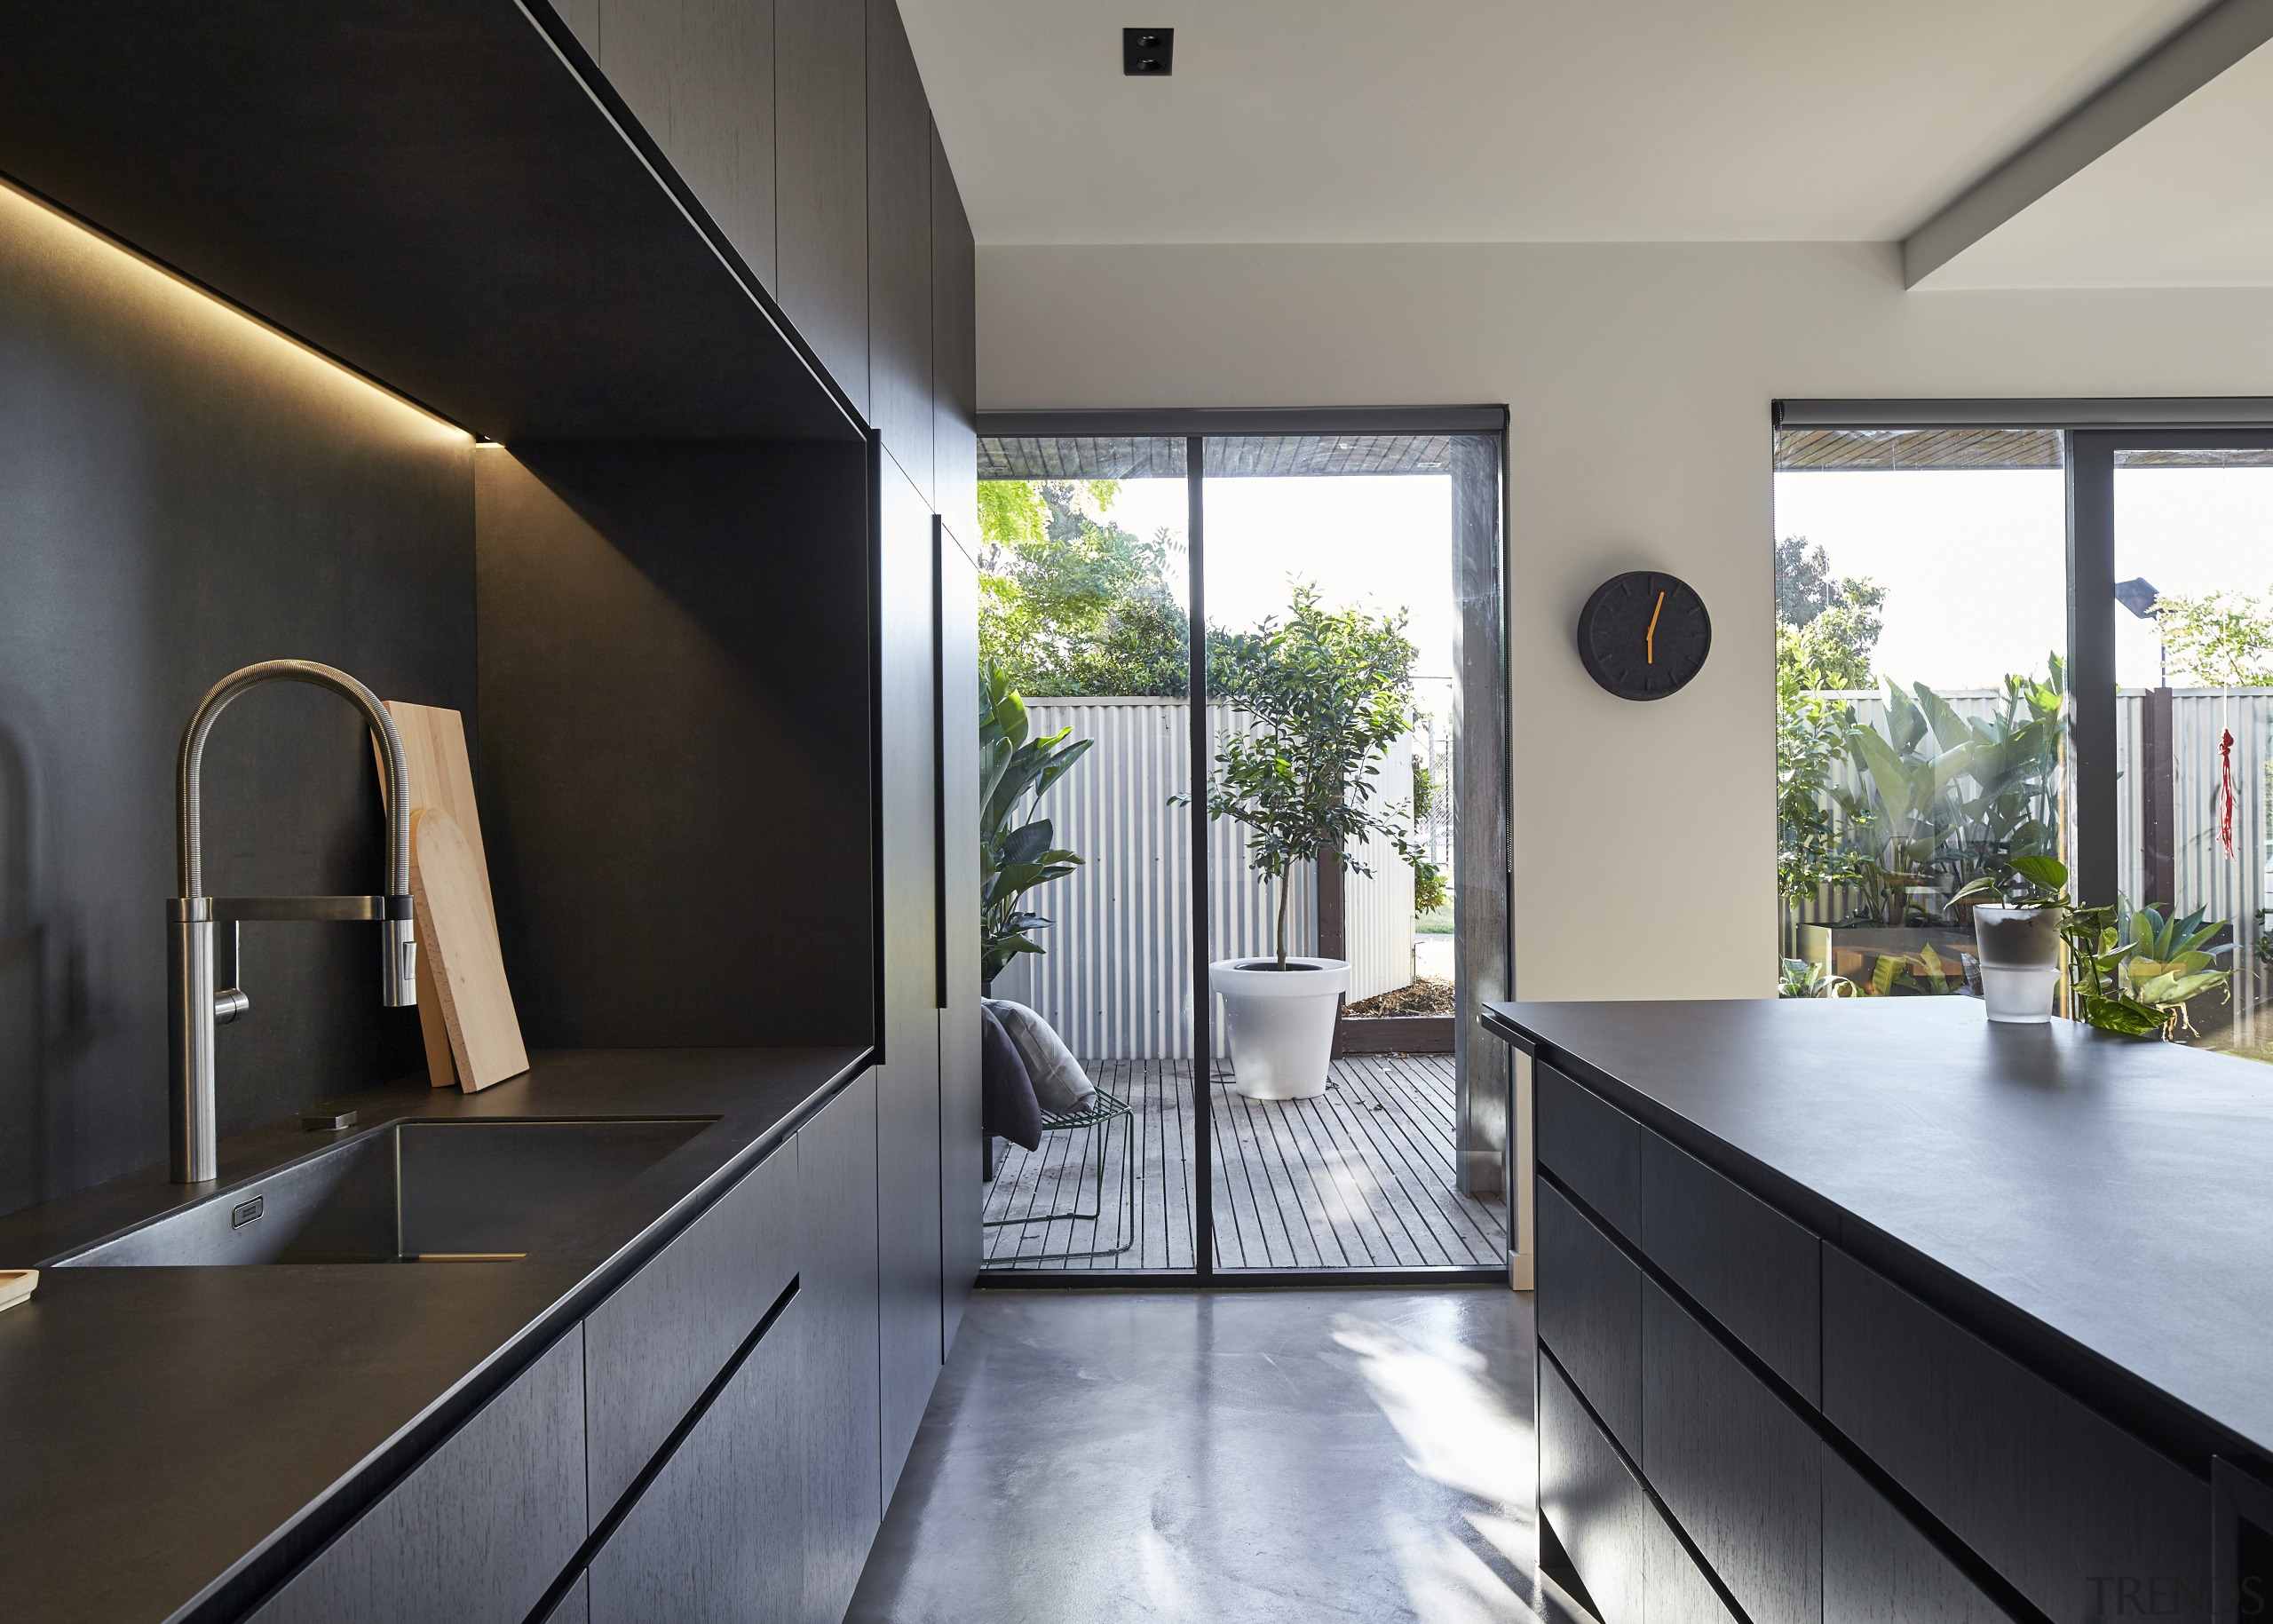 Although the cabinets in this kitchen appear black, architecture, countertop, house, interior design, kitchen, real estate, gray, black